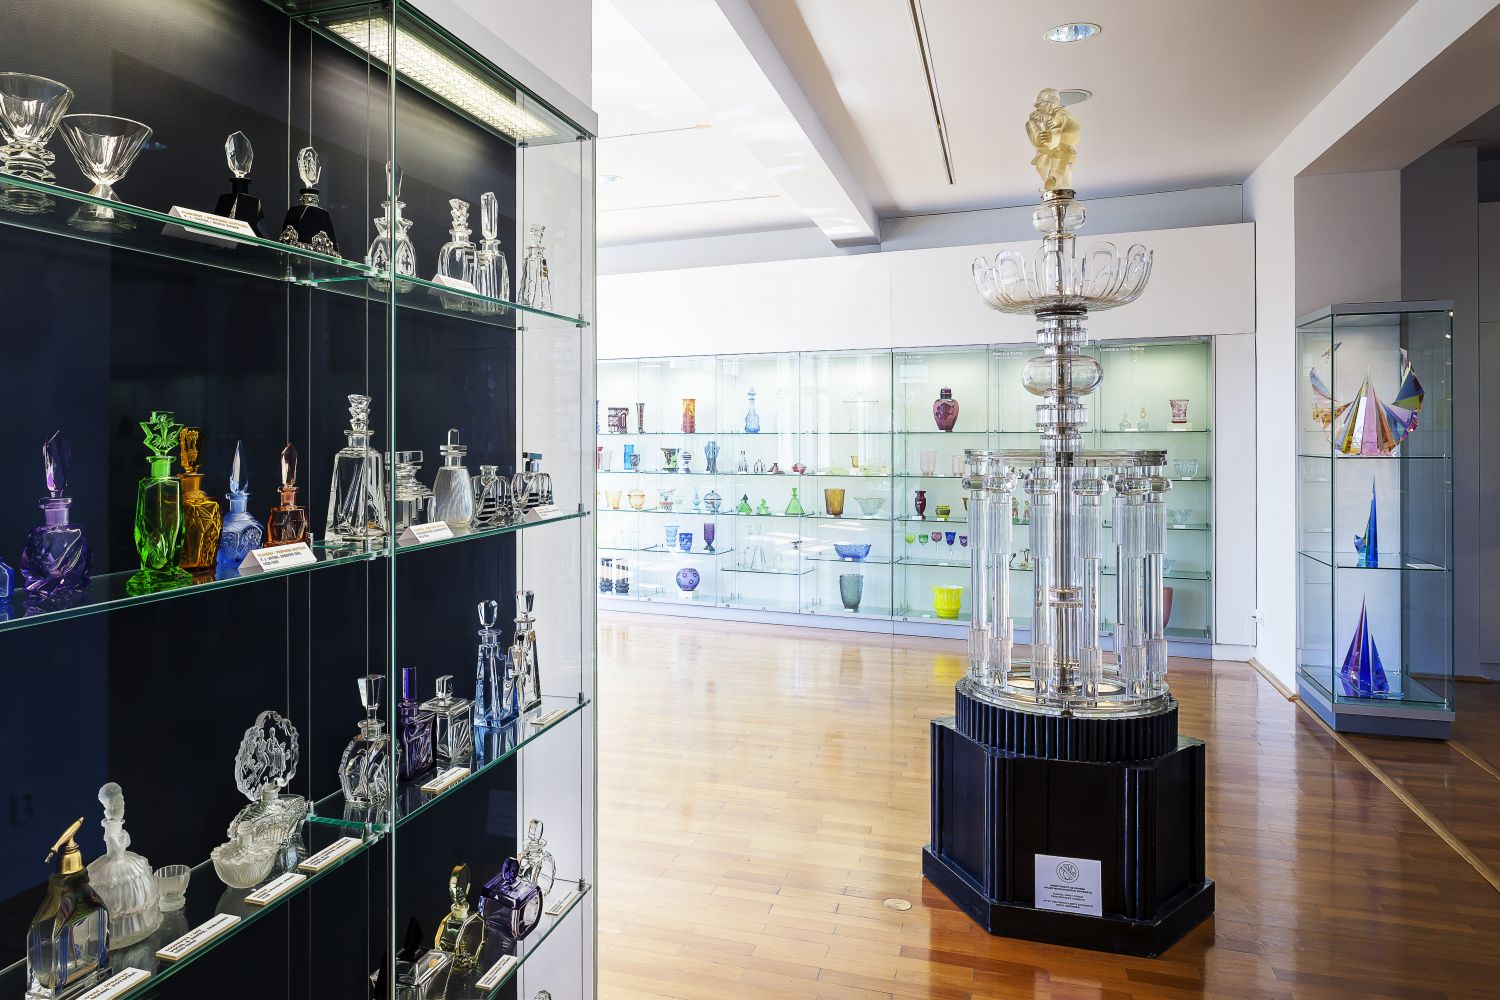 Obrázek v galerii pro Museum of Glass and Jewellery in Jablonec nad Nisou